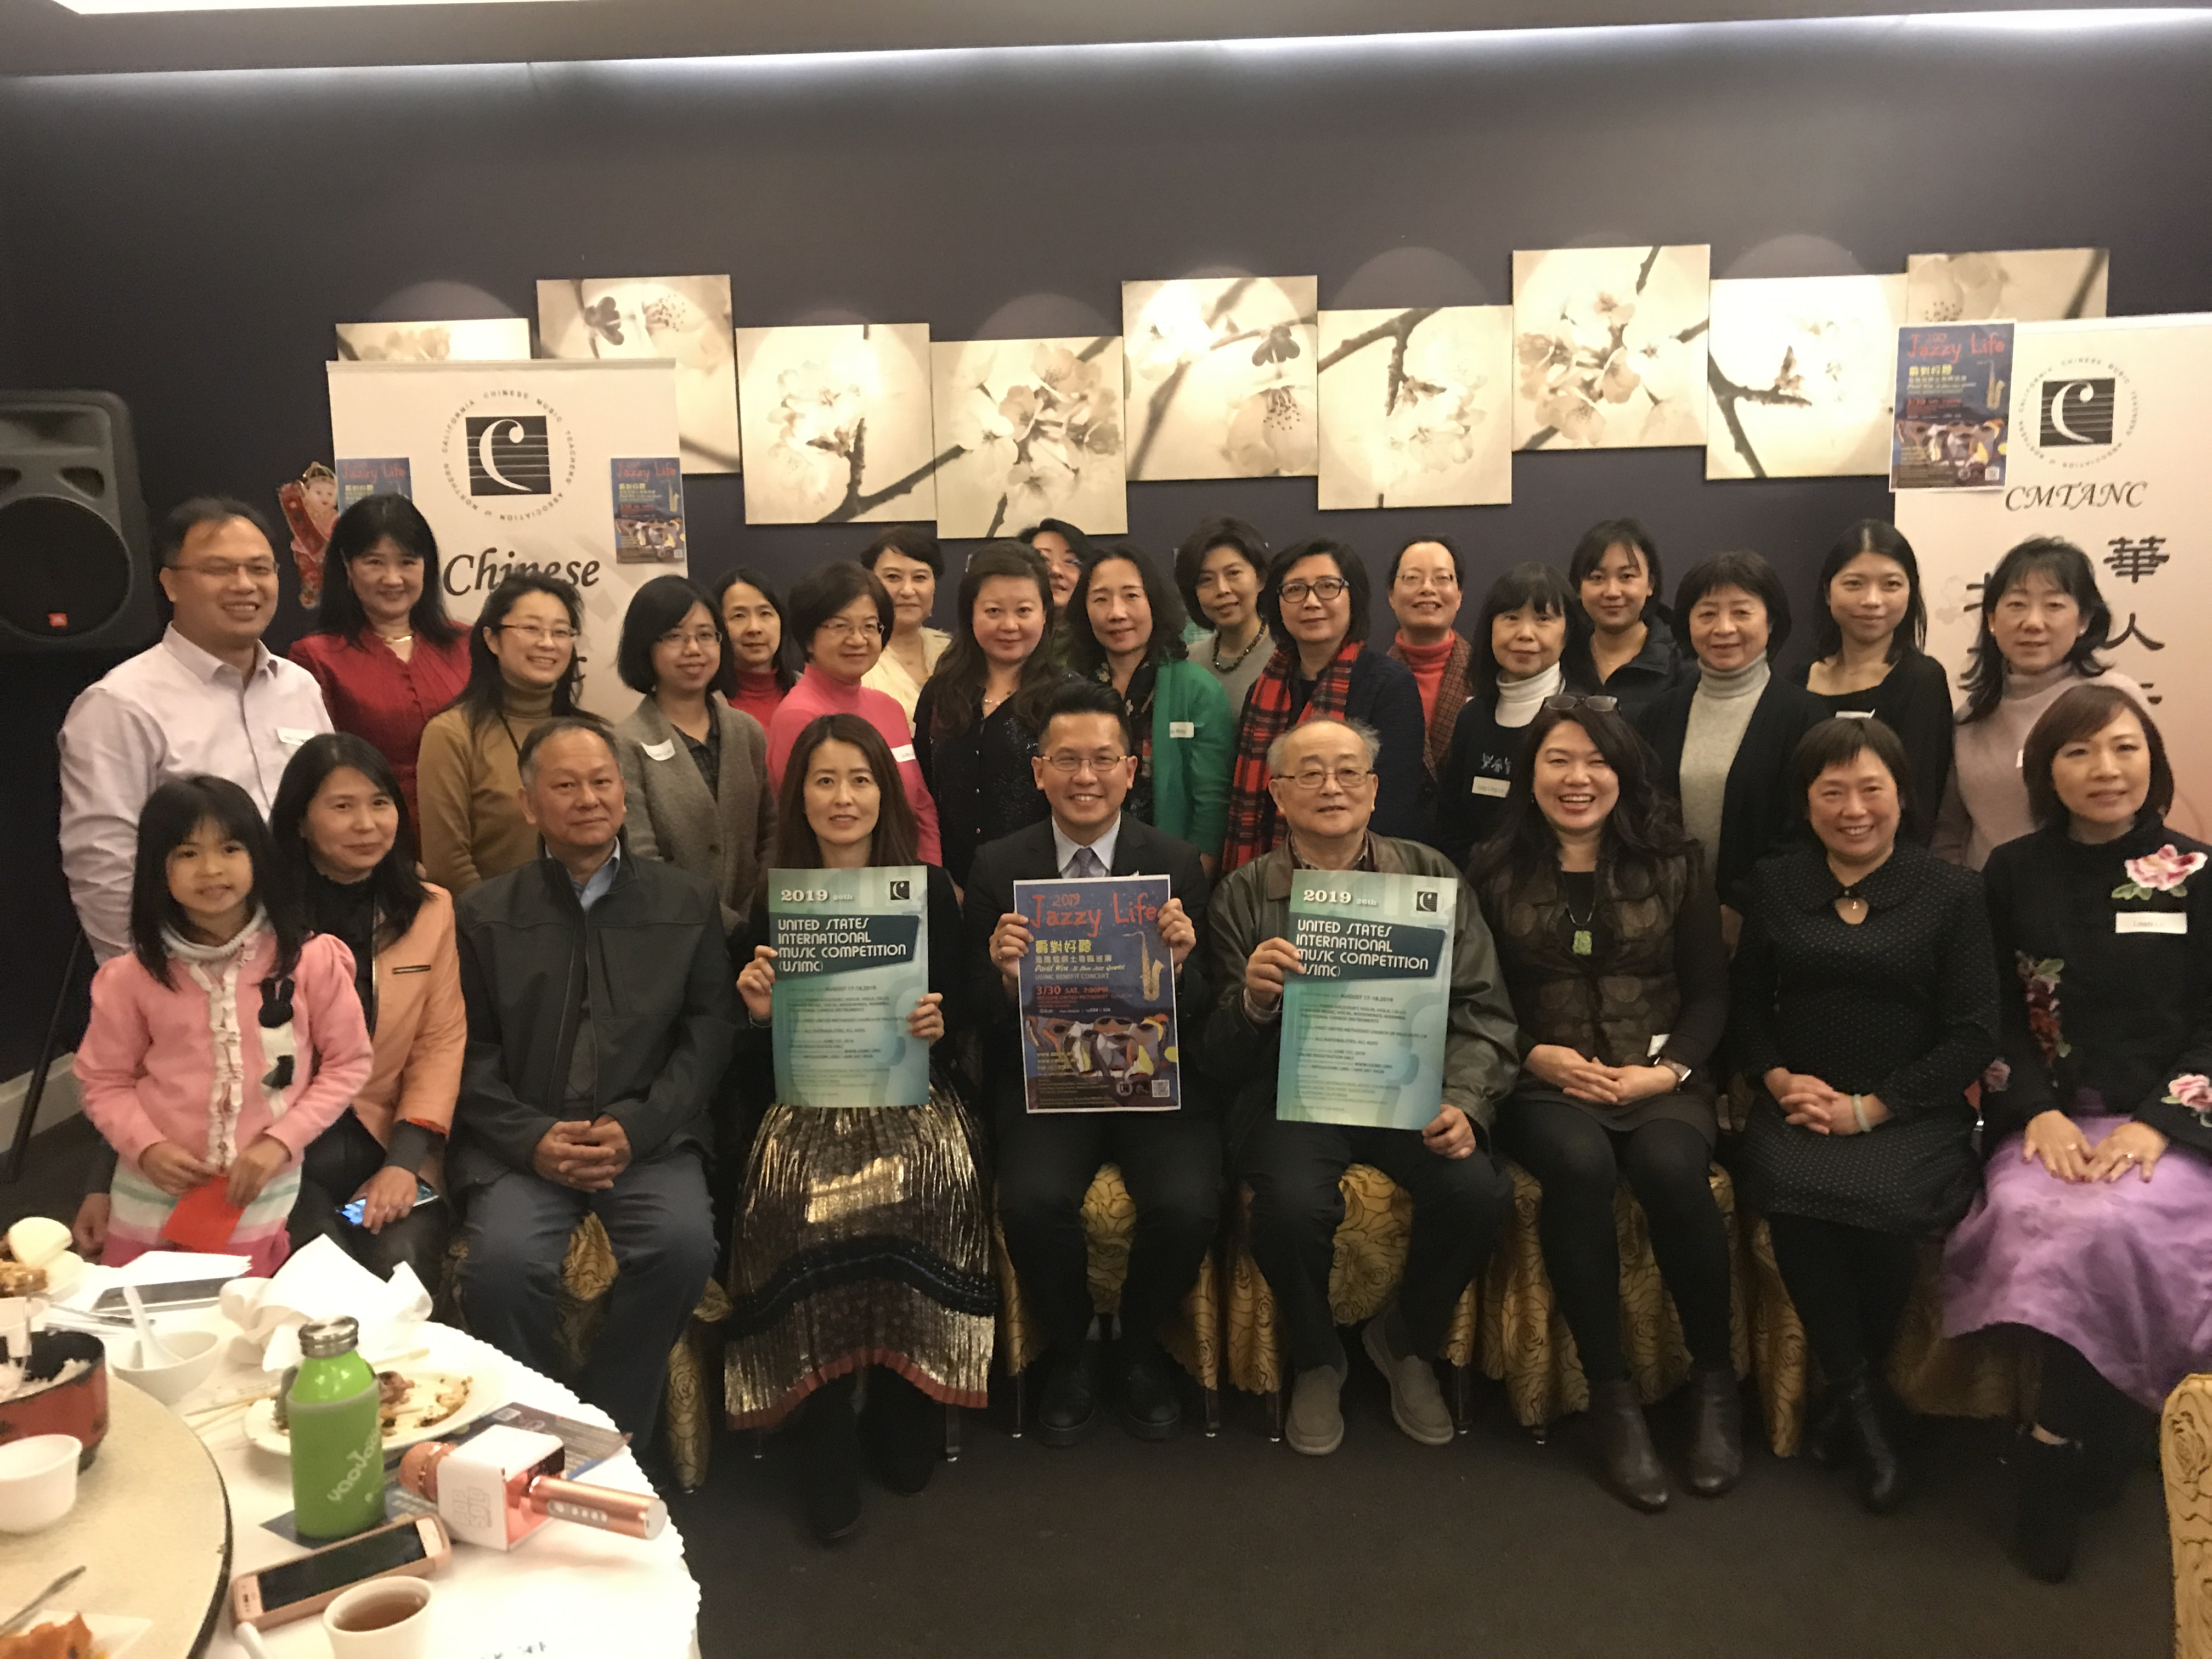 Chinese New Year Party 新春活動 Feb/18/2019